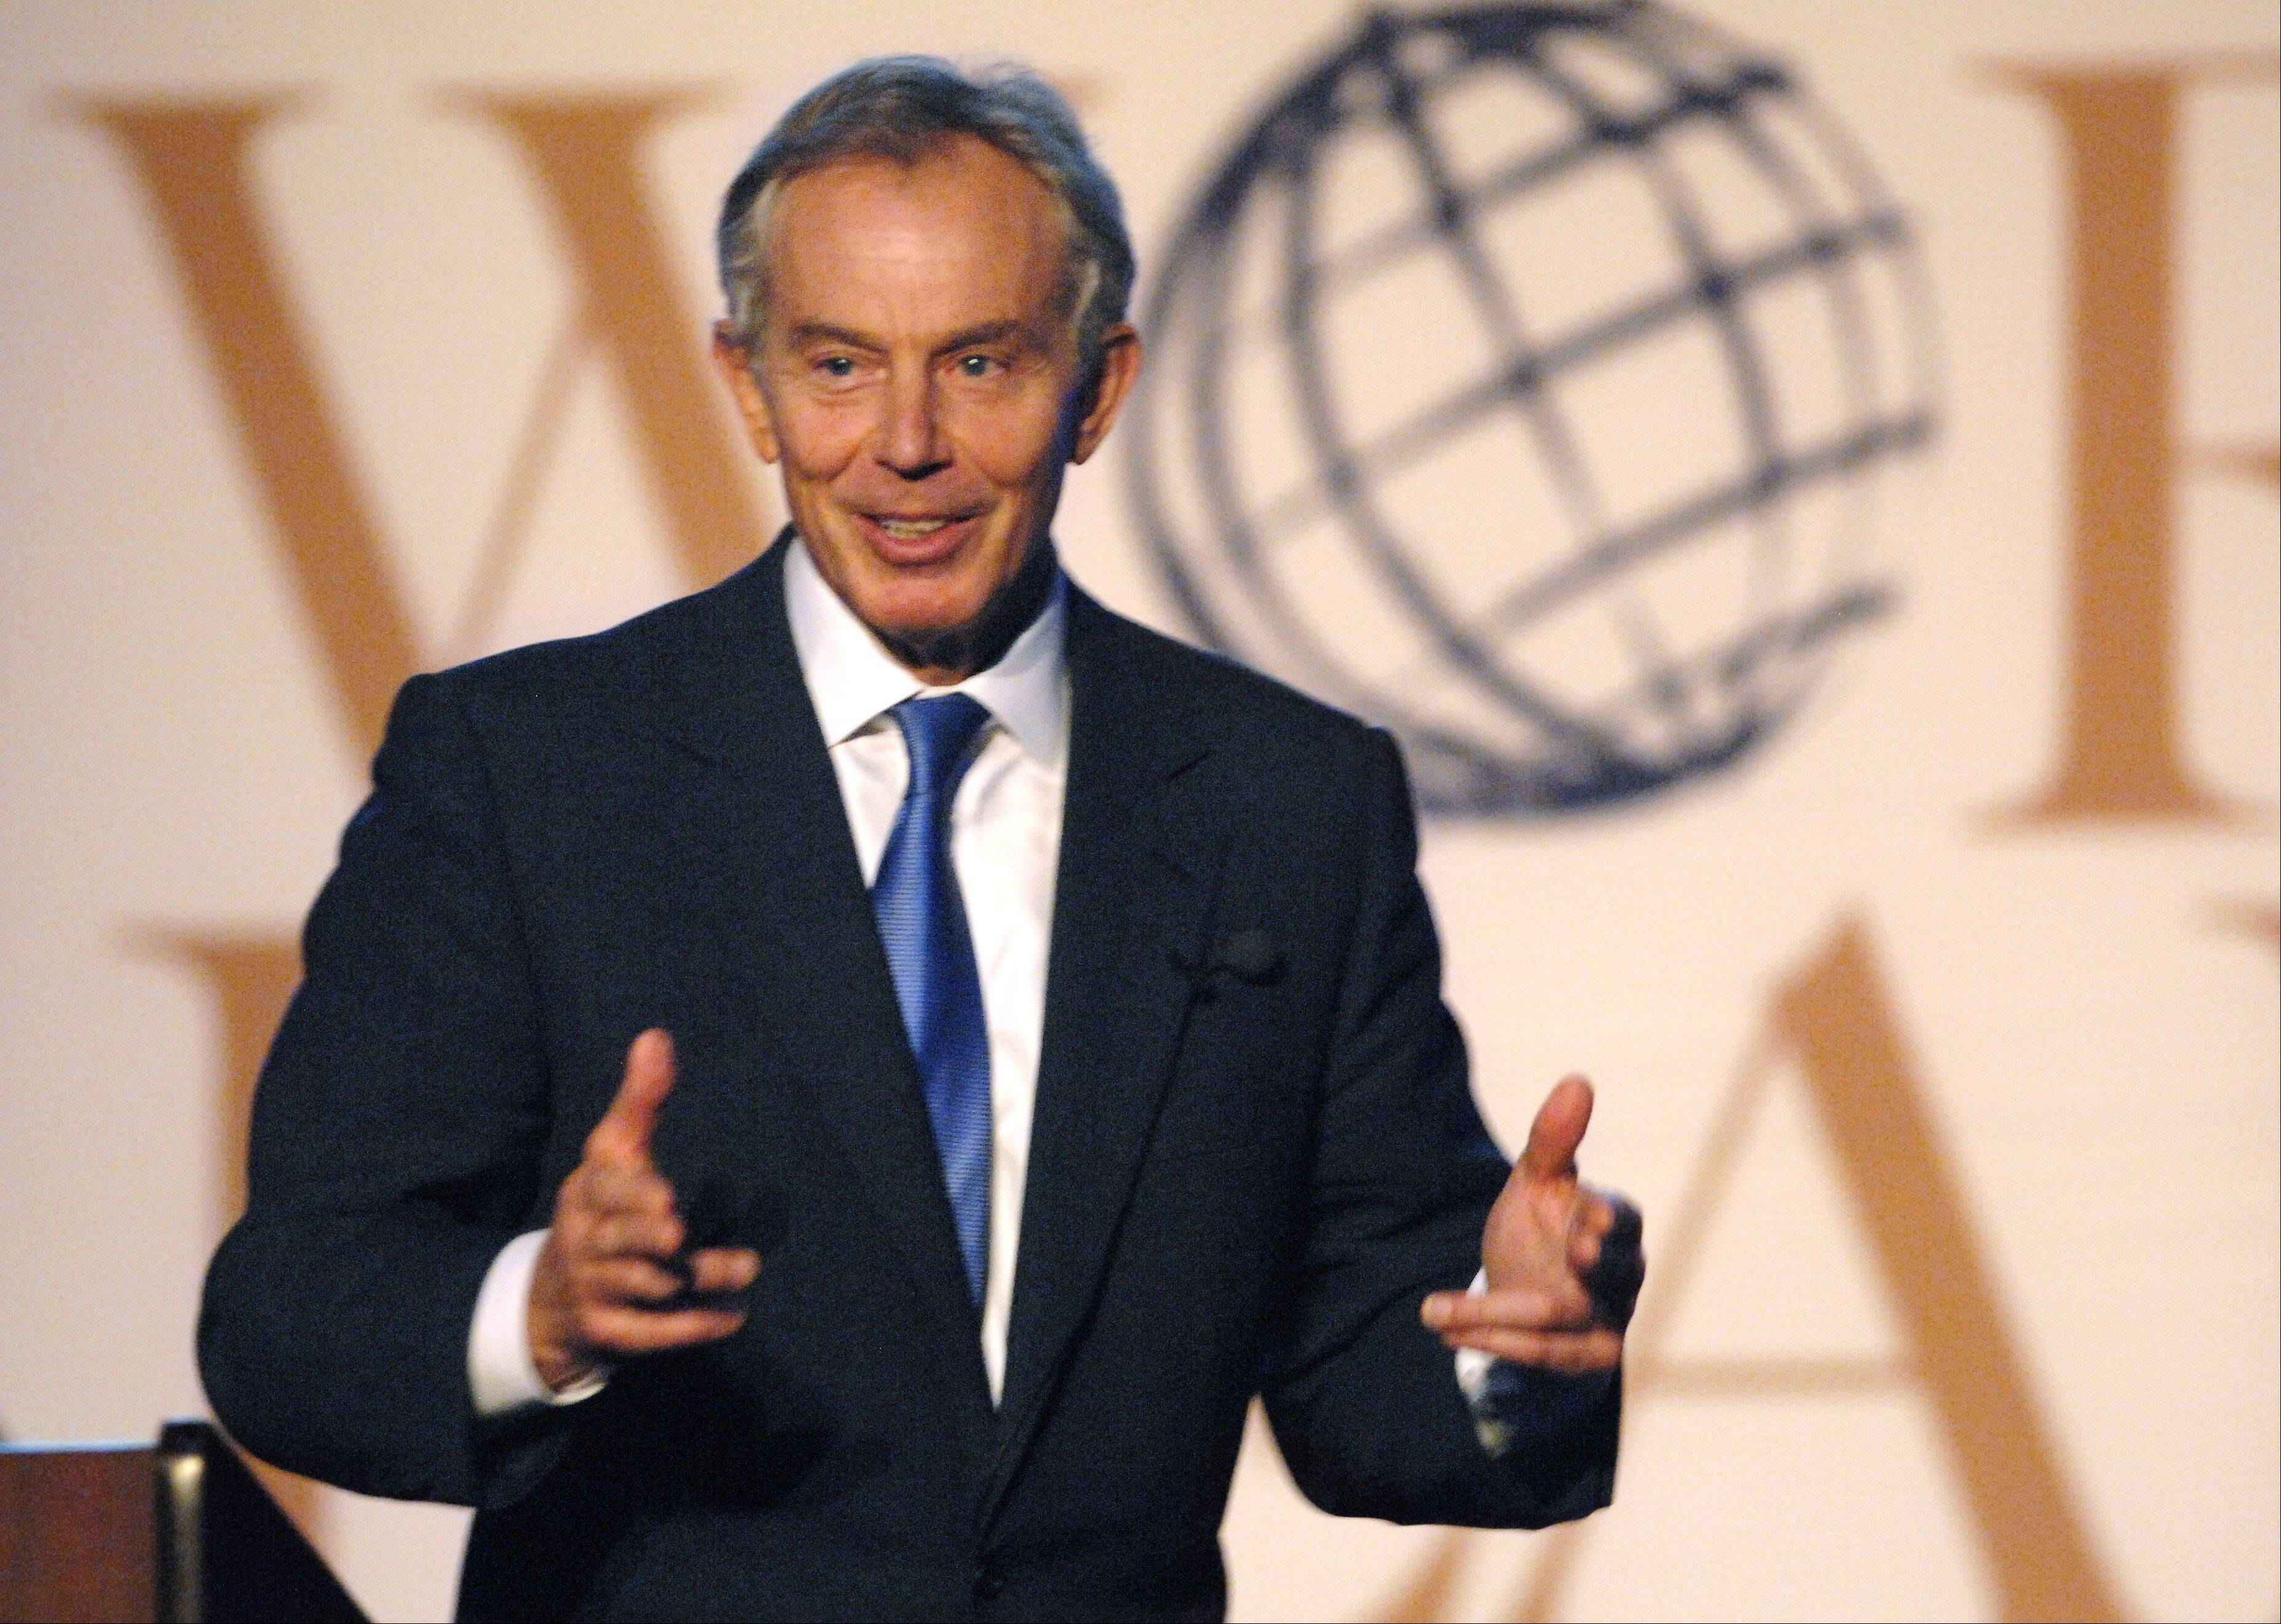 Former British Prime Minister Tony Blair speaks at the World Leaders Forum at Judson University's Herrick Chapel in April.